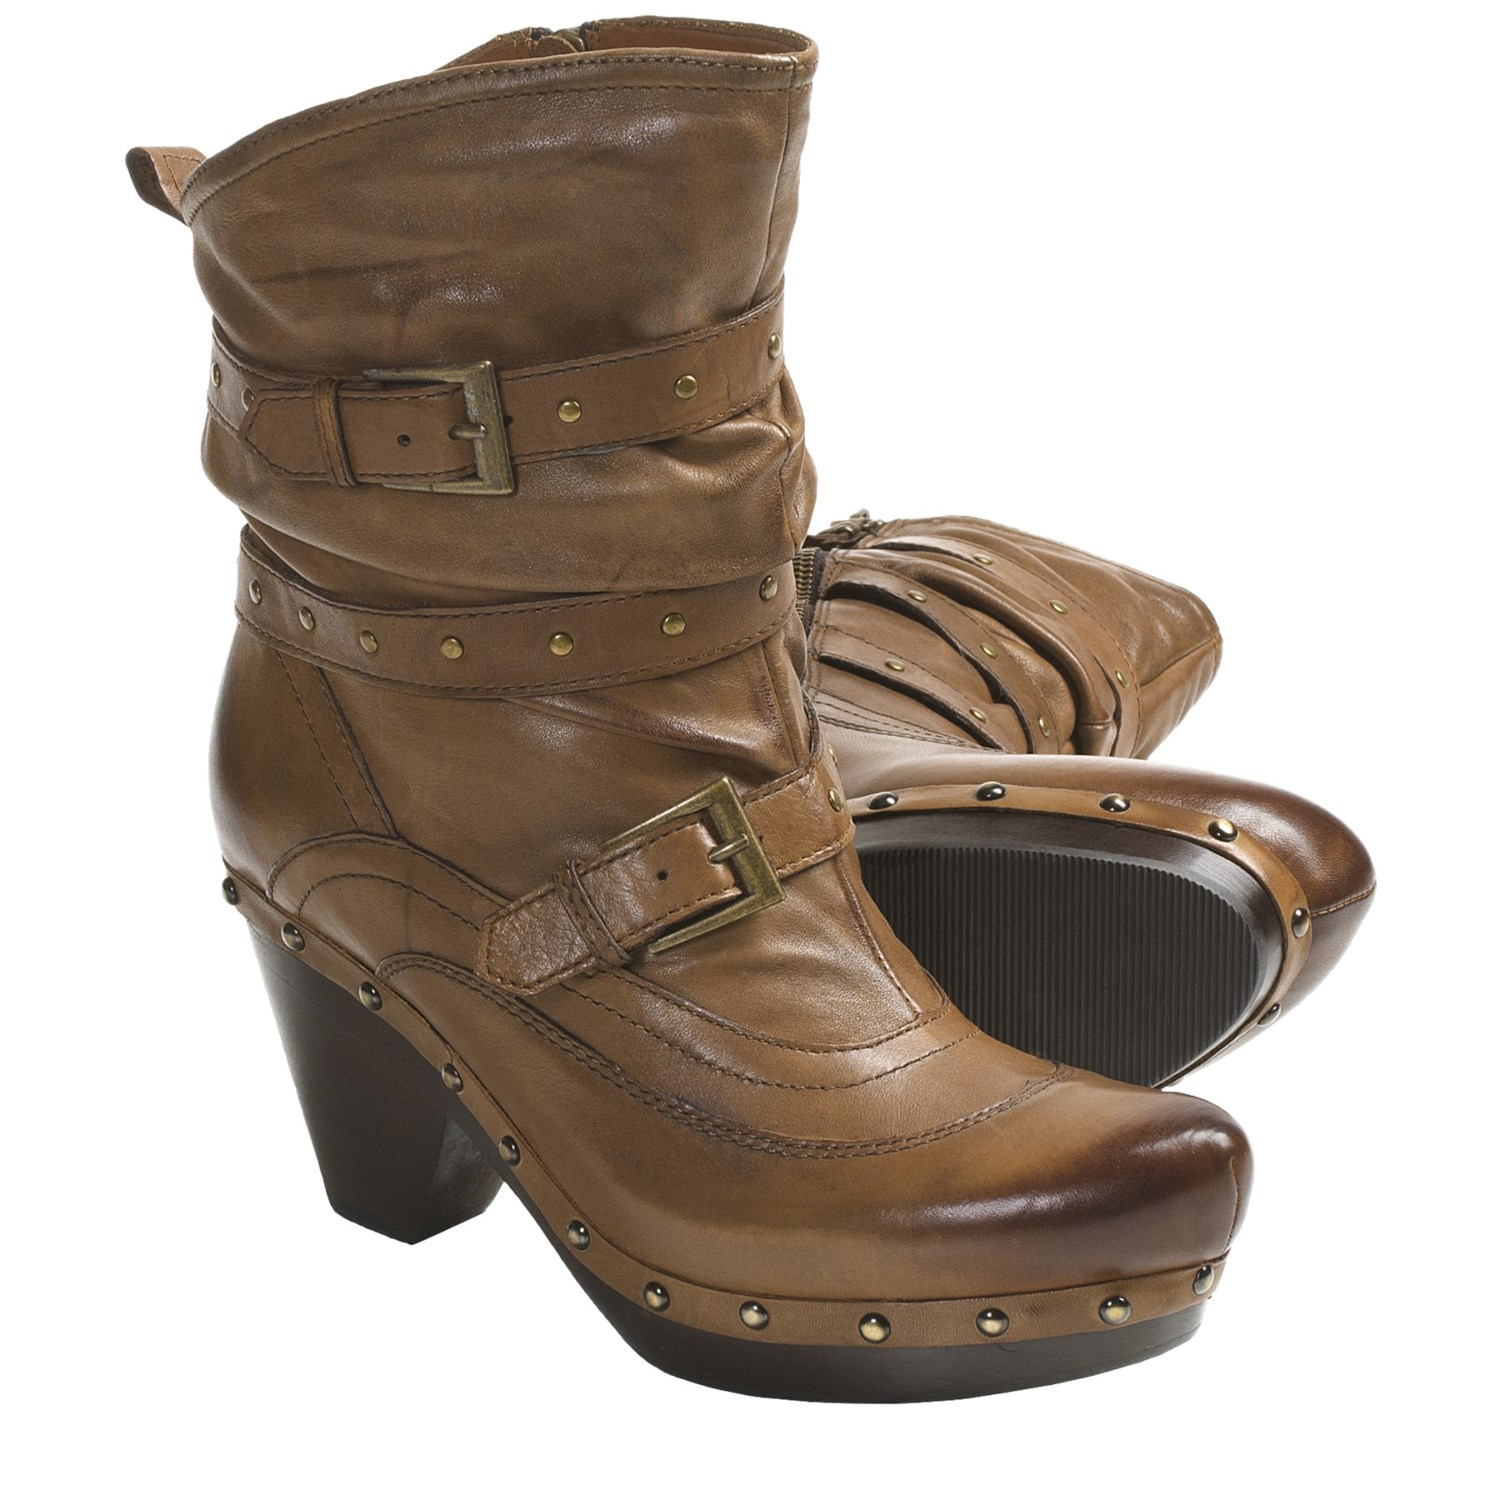 cbb3623343a9 Earthies Fabienne Boots Leather For Women Save 34